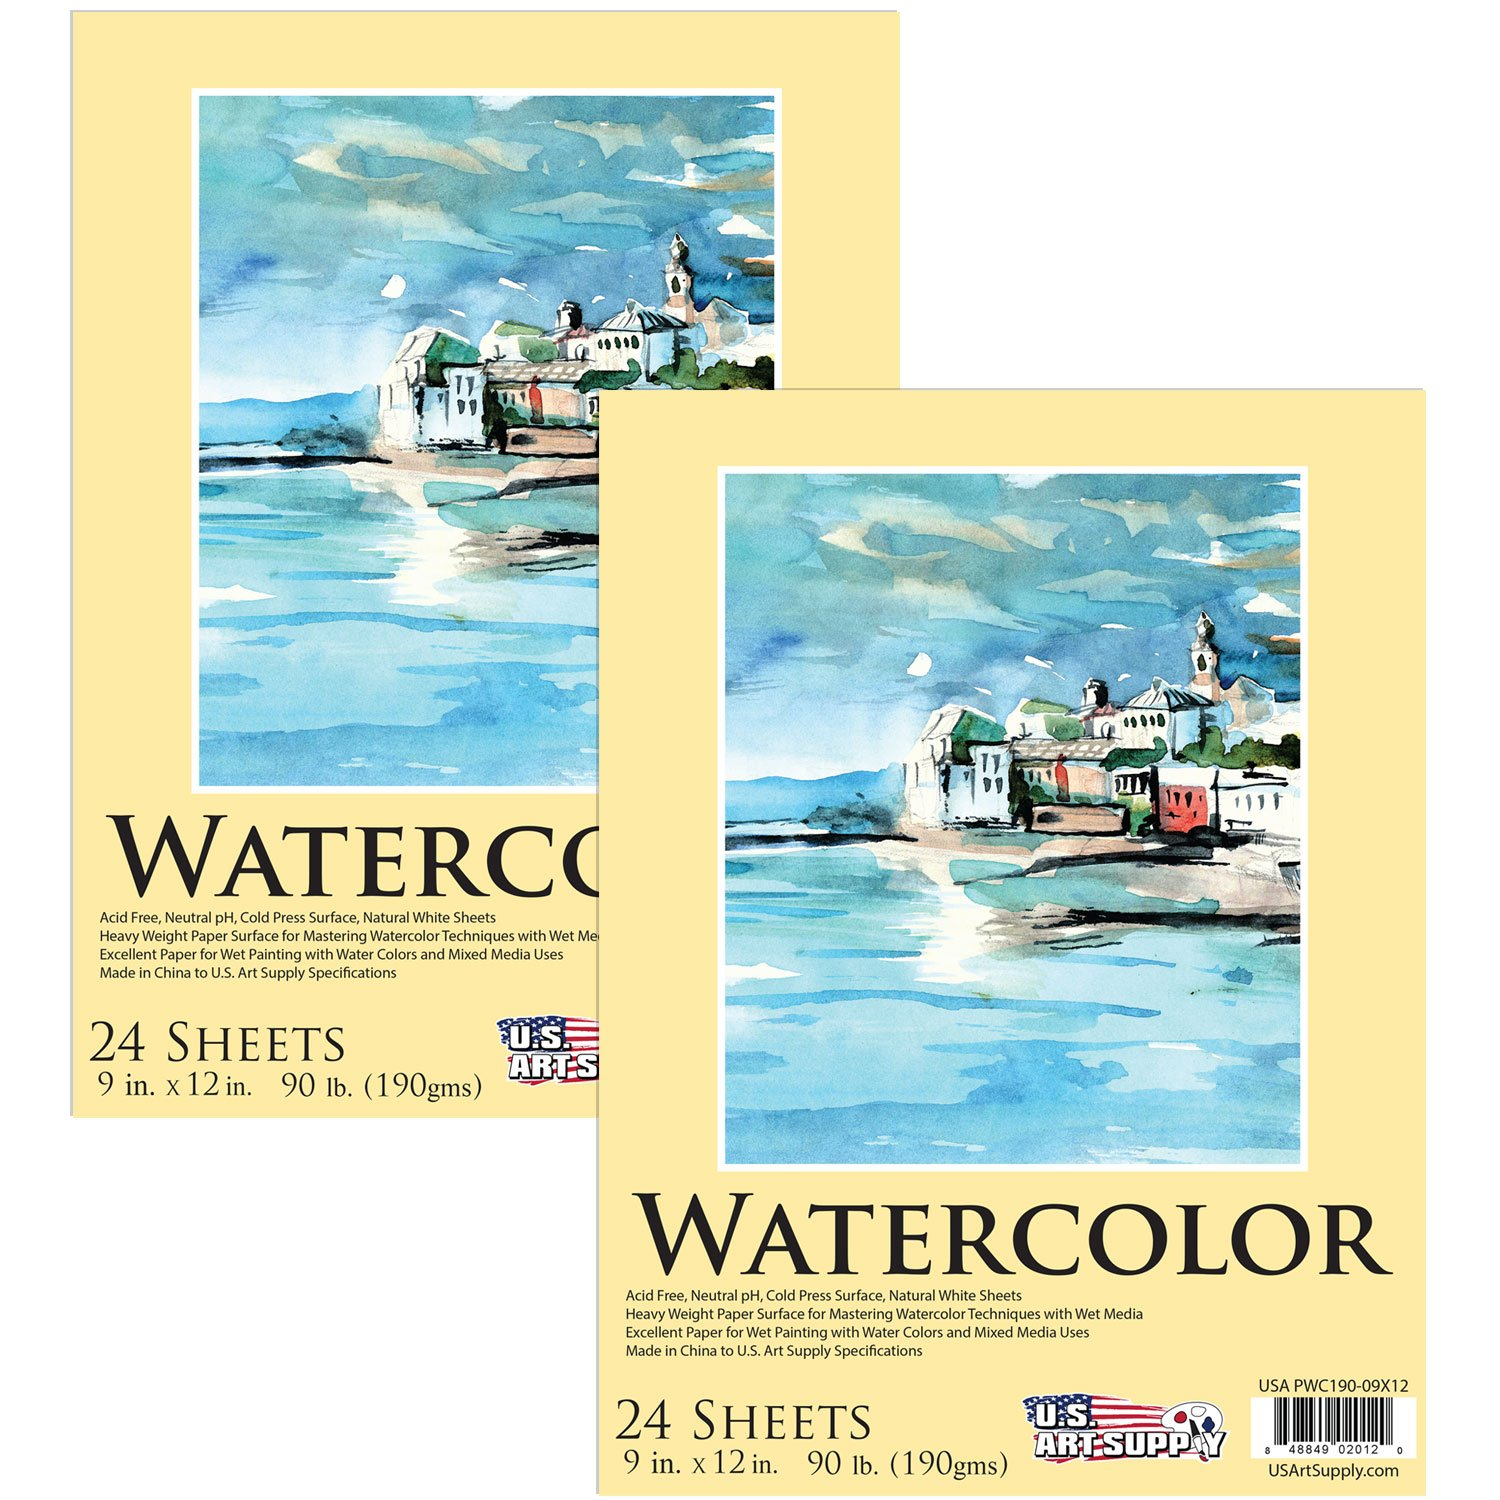 U.S. Art Supply 9'' x 12'' Premium Extra Heavy-Weight Watercolor Painting Paper Pad, 90 Pound (190gsm), Pad of 24-Sheets (Pack of 2 Pads)